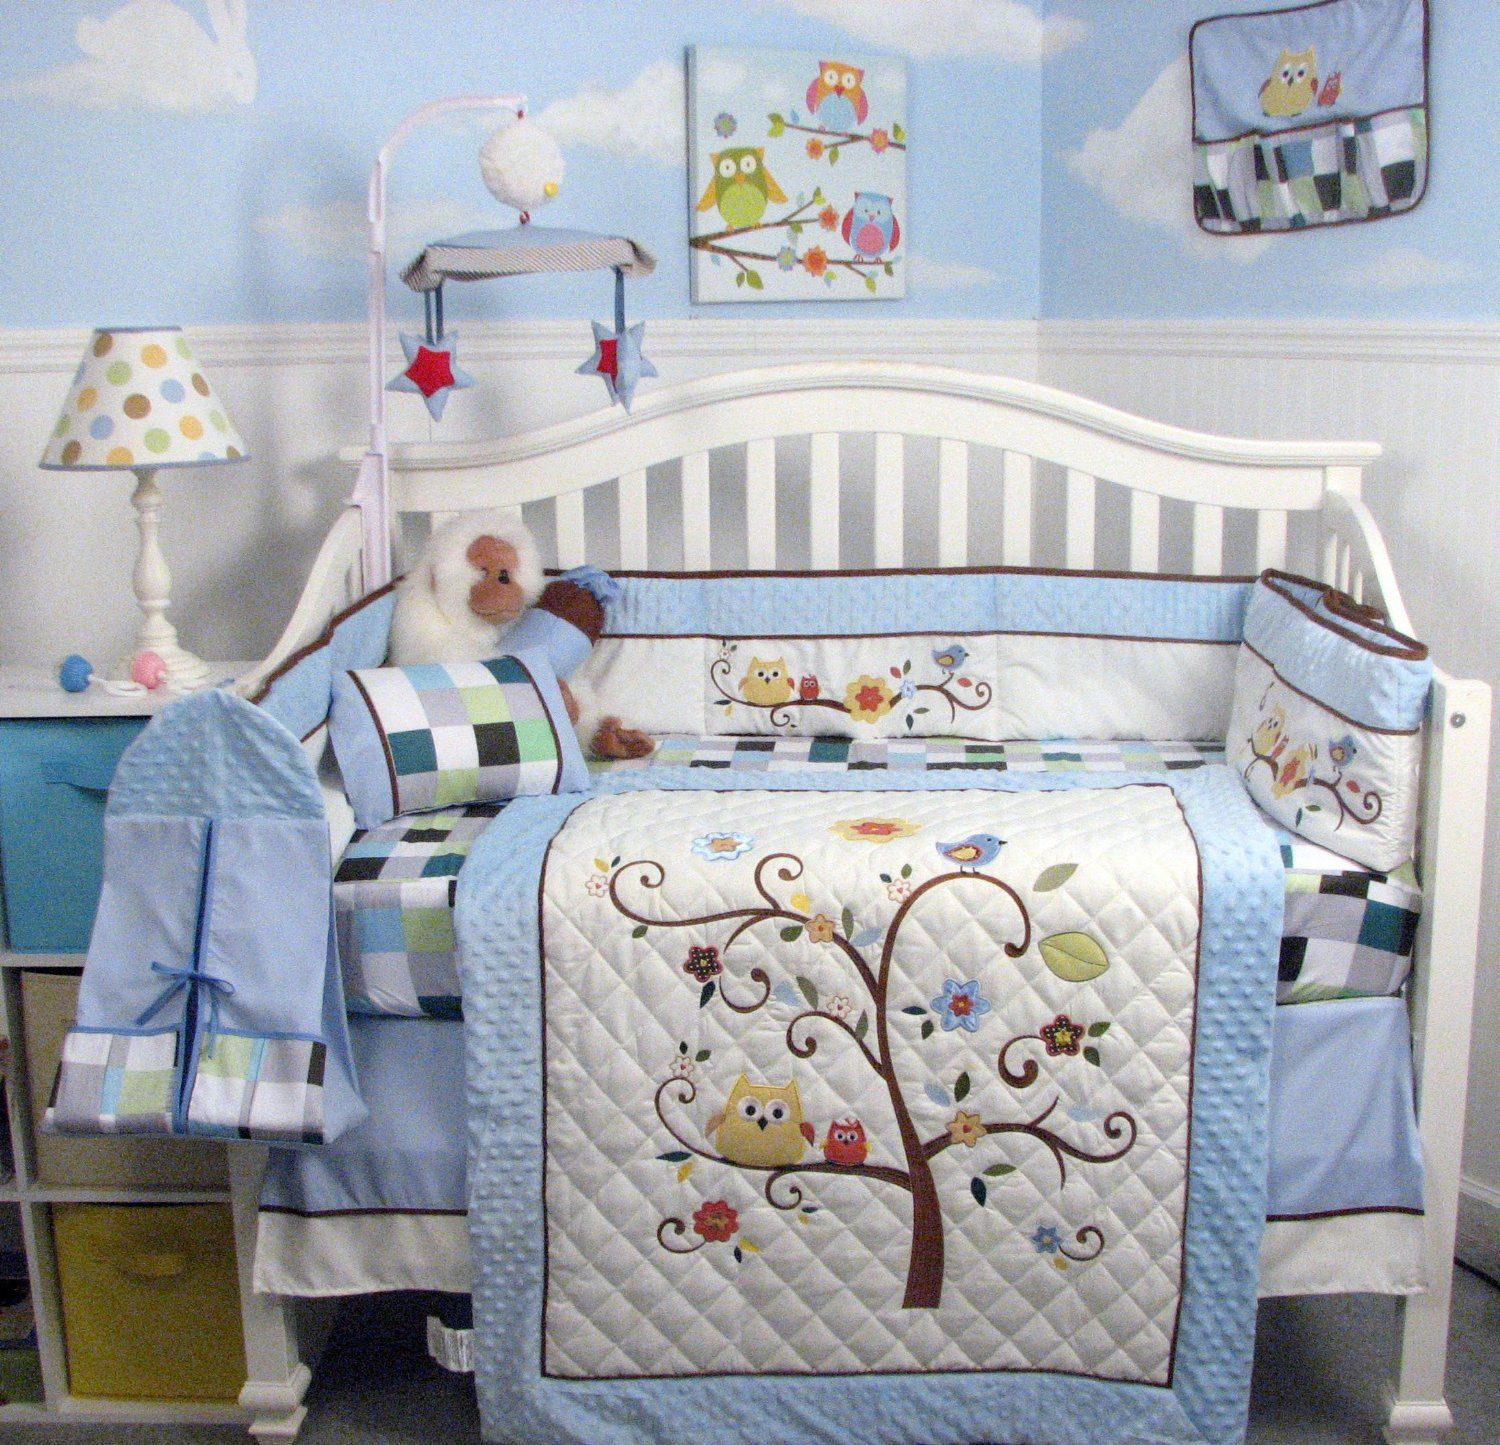 Amazon Com Soho Baby Blue Cherry Tree Nursery Bedding Set 14 Pcs Baby Nursery Bedding Baby Bedding Sets